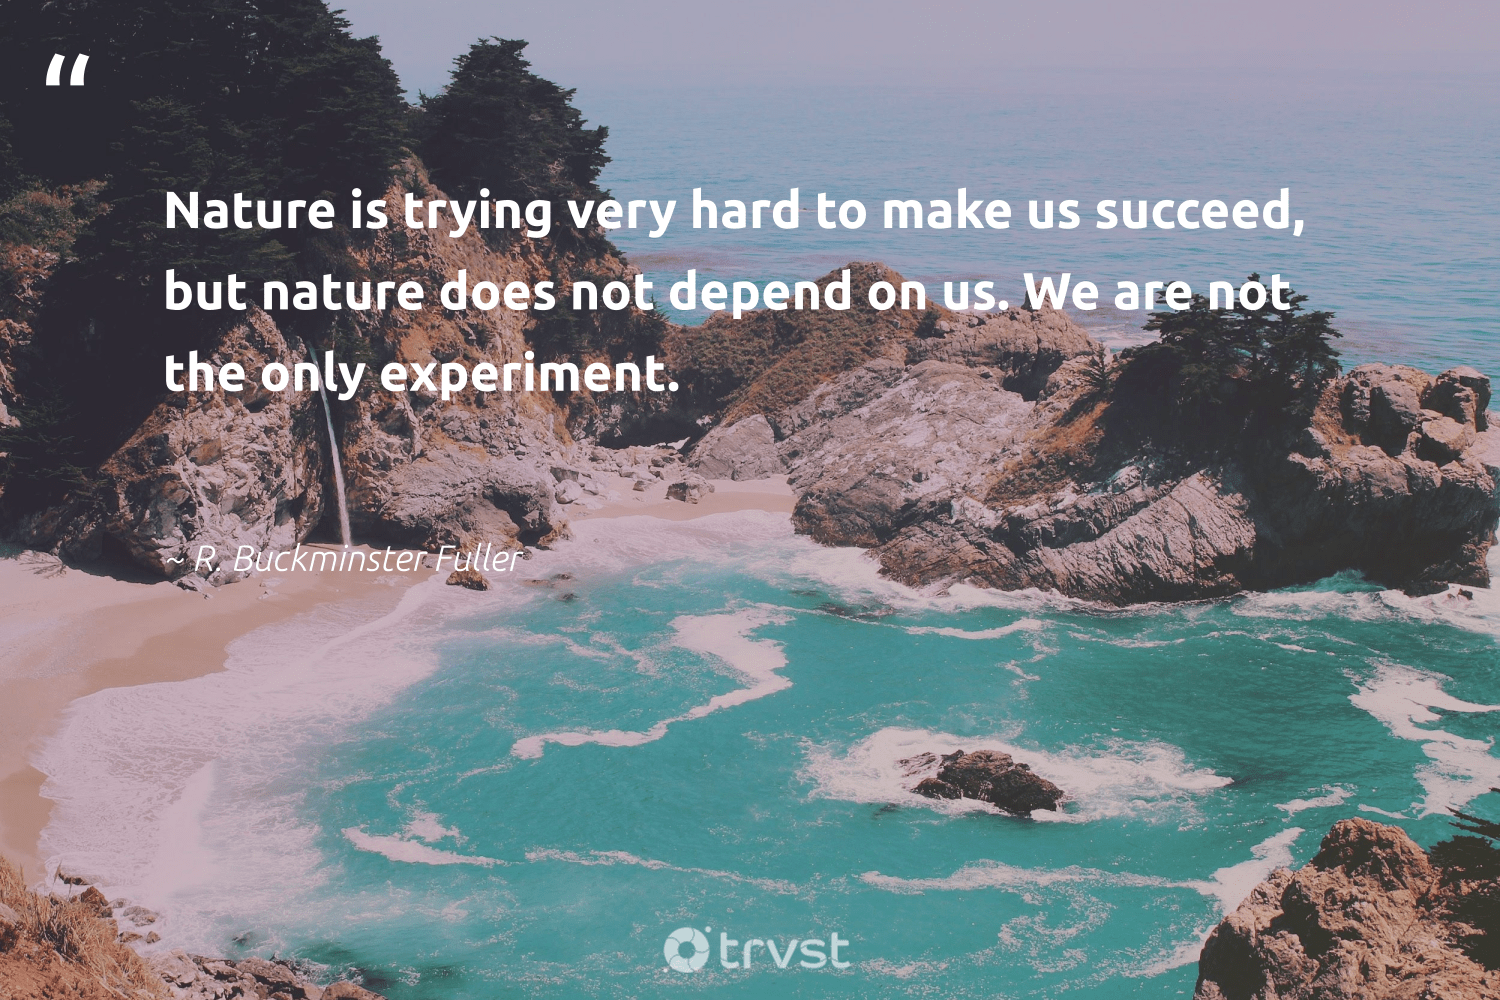 """""""Nature is trying very hard to make us succeed, but nature does not depend on us. We are not the only experiment.""""  - R. Buckminster Fuller #trvst #quotes #environment #nature #earth #sustainable #volunteer #dogood #conservation #climatechange #eco #dotherightthing"""